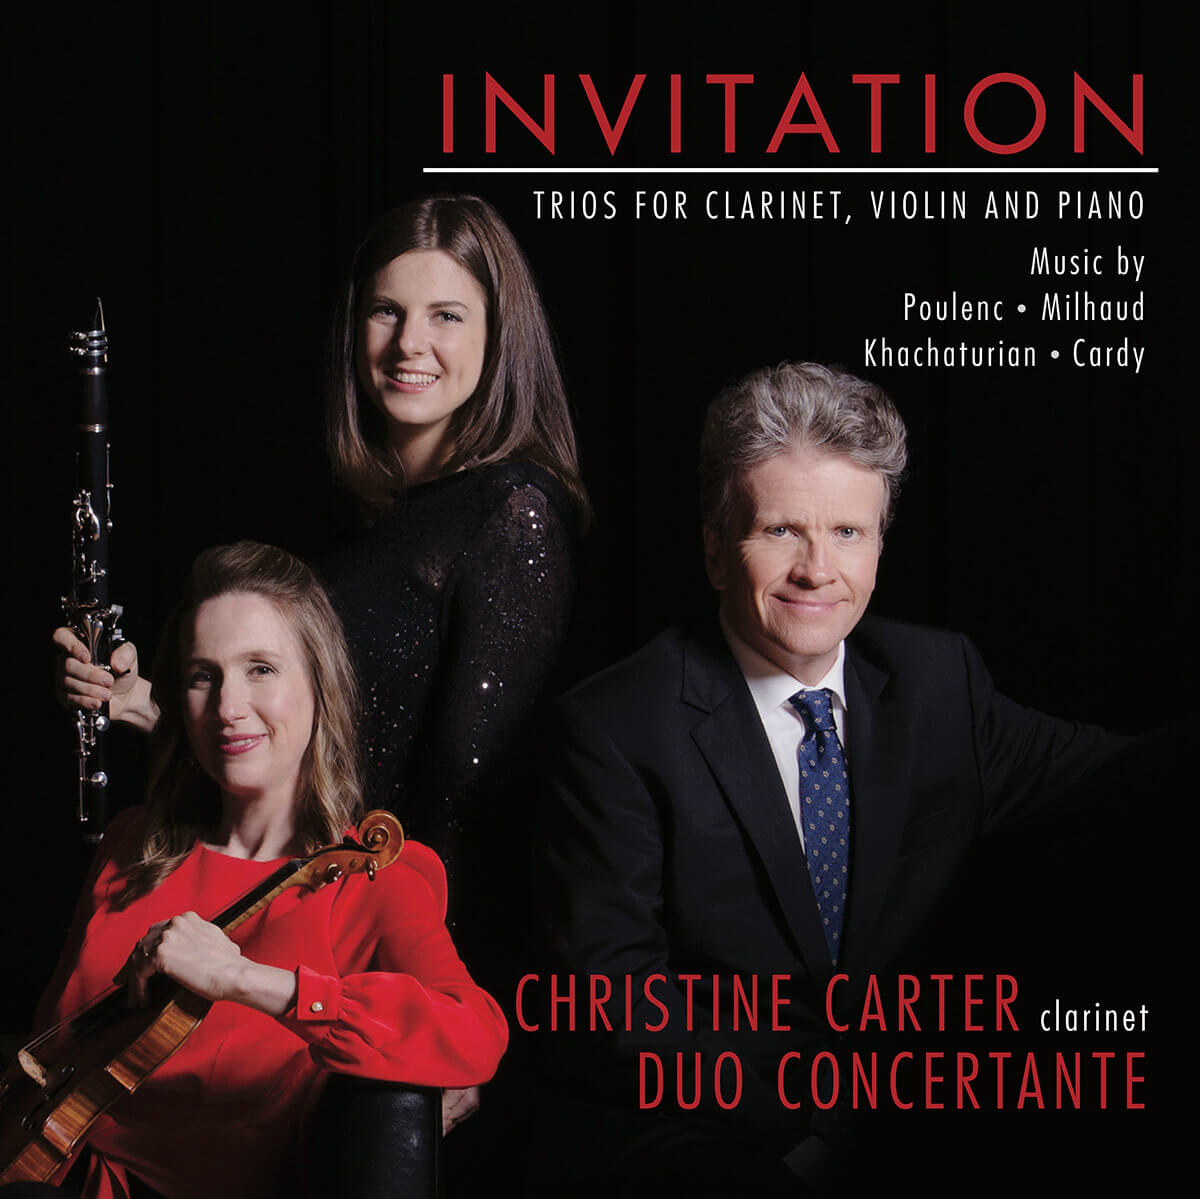 Invitation: Trios for Clarinet, Violin, and Piano